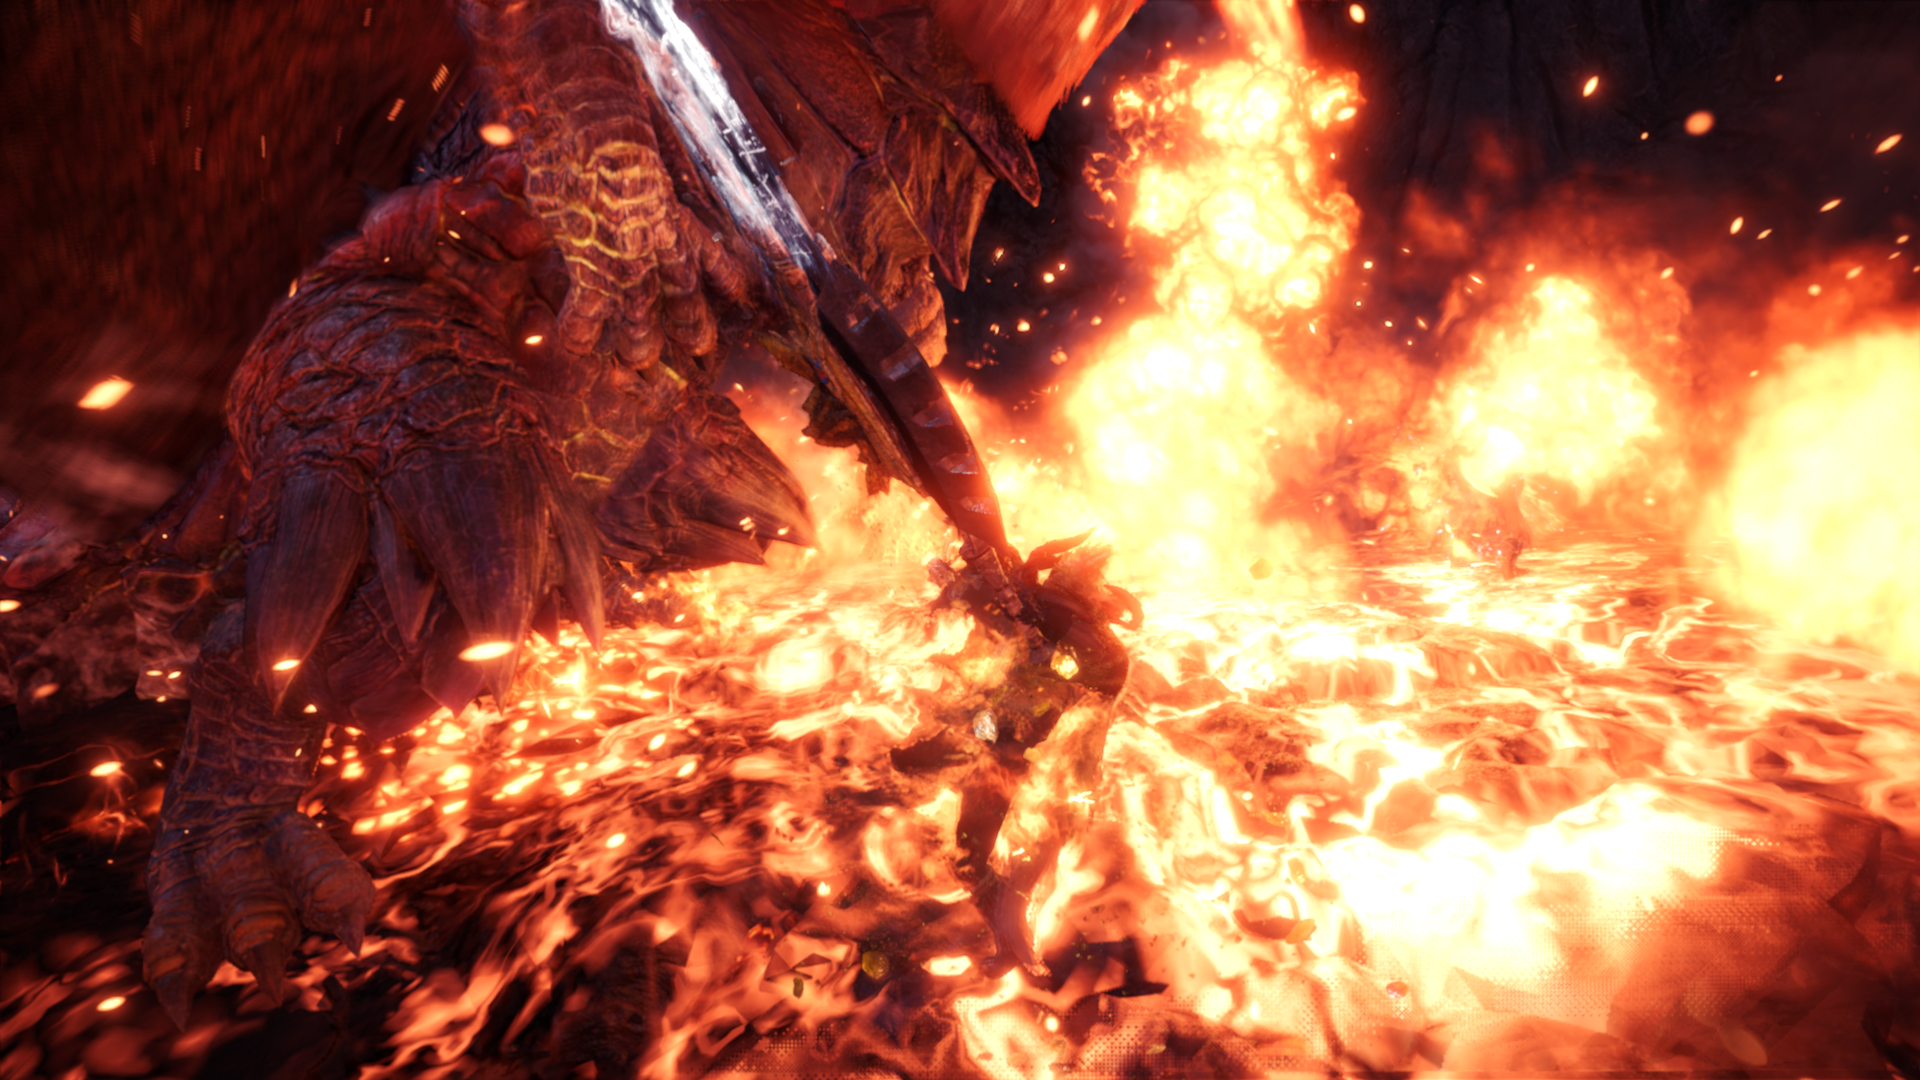 Teostra sets the world on fire